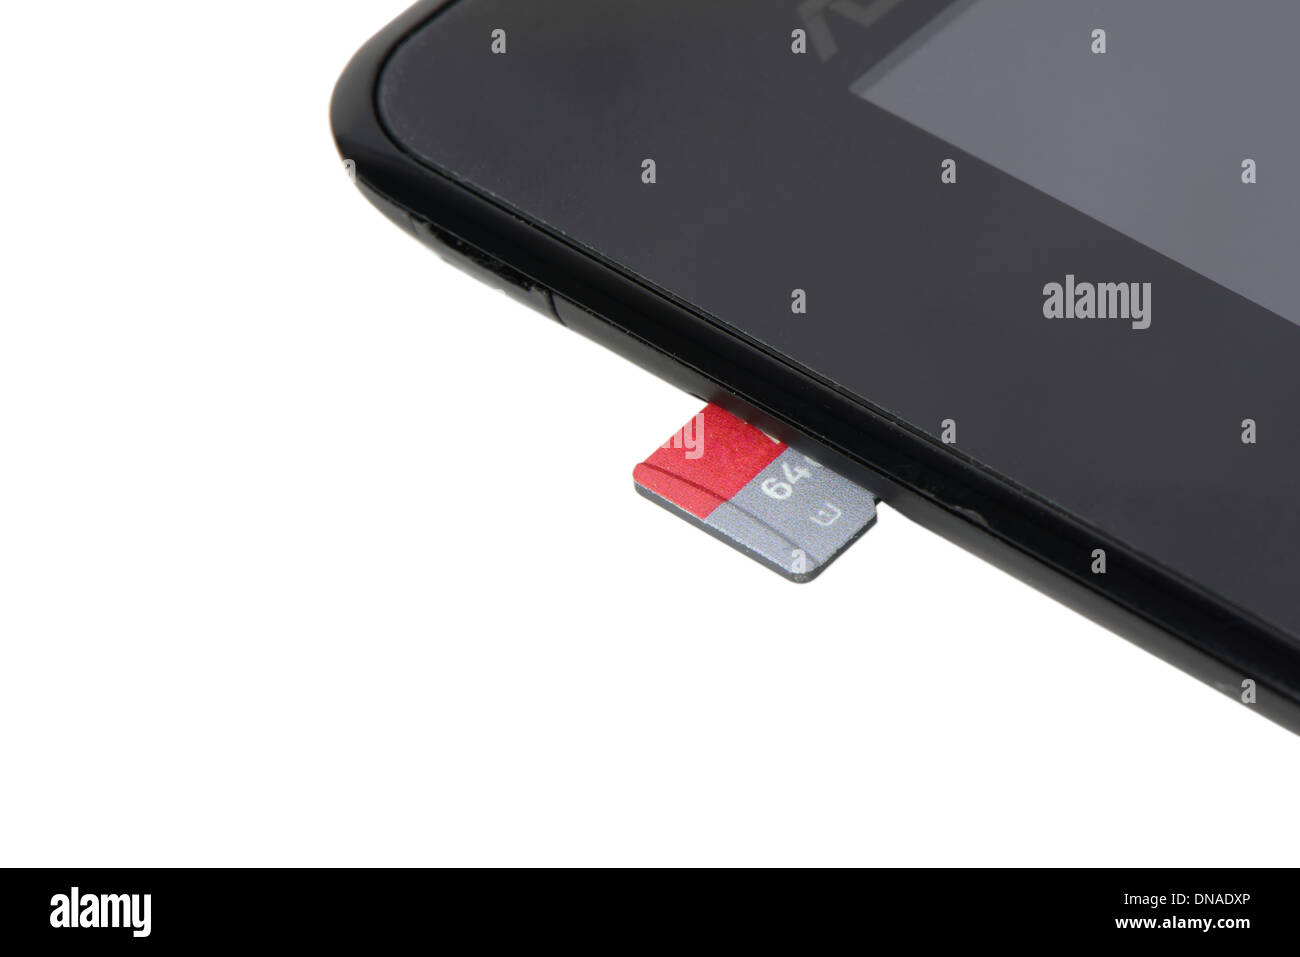 Memory Slot Stock Photos Images Alamy Chips In A Cell Phone Board Royalty Free Photo Image Microsd Card And Tablet